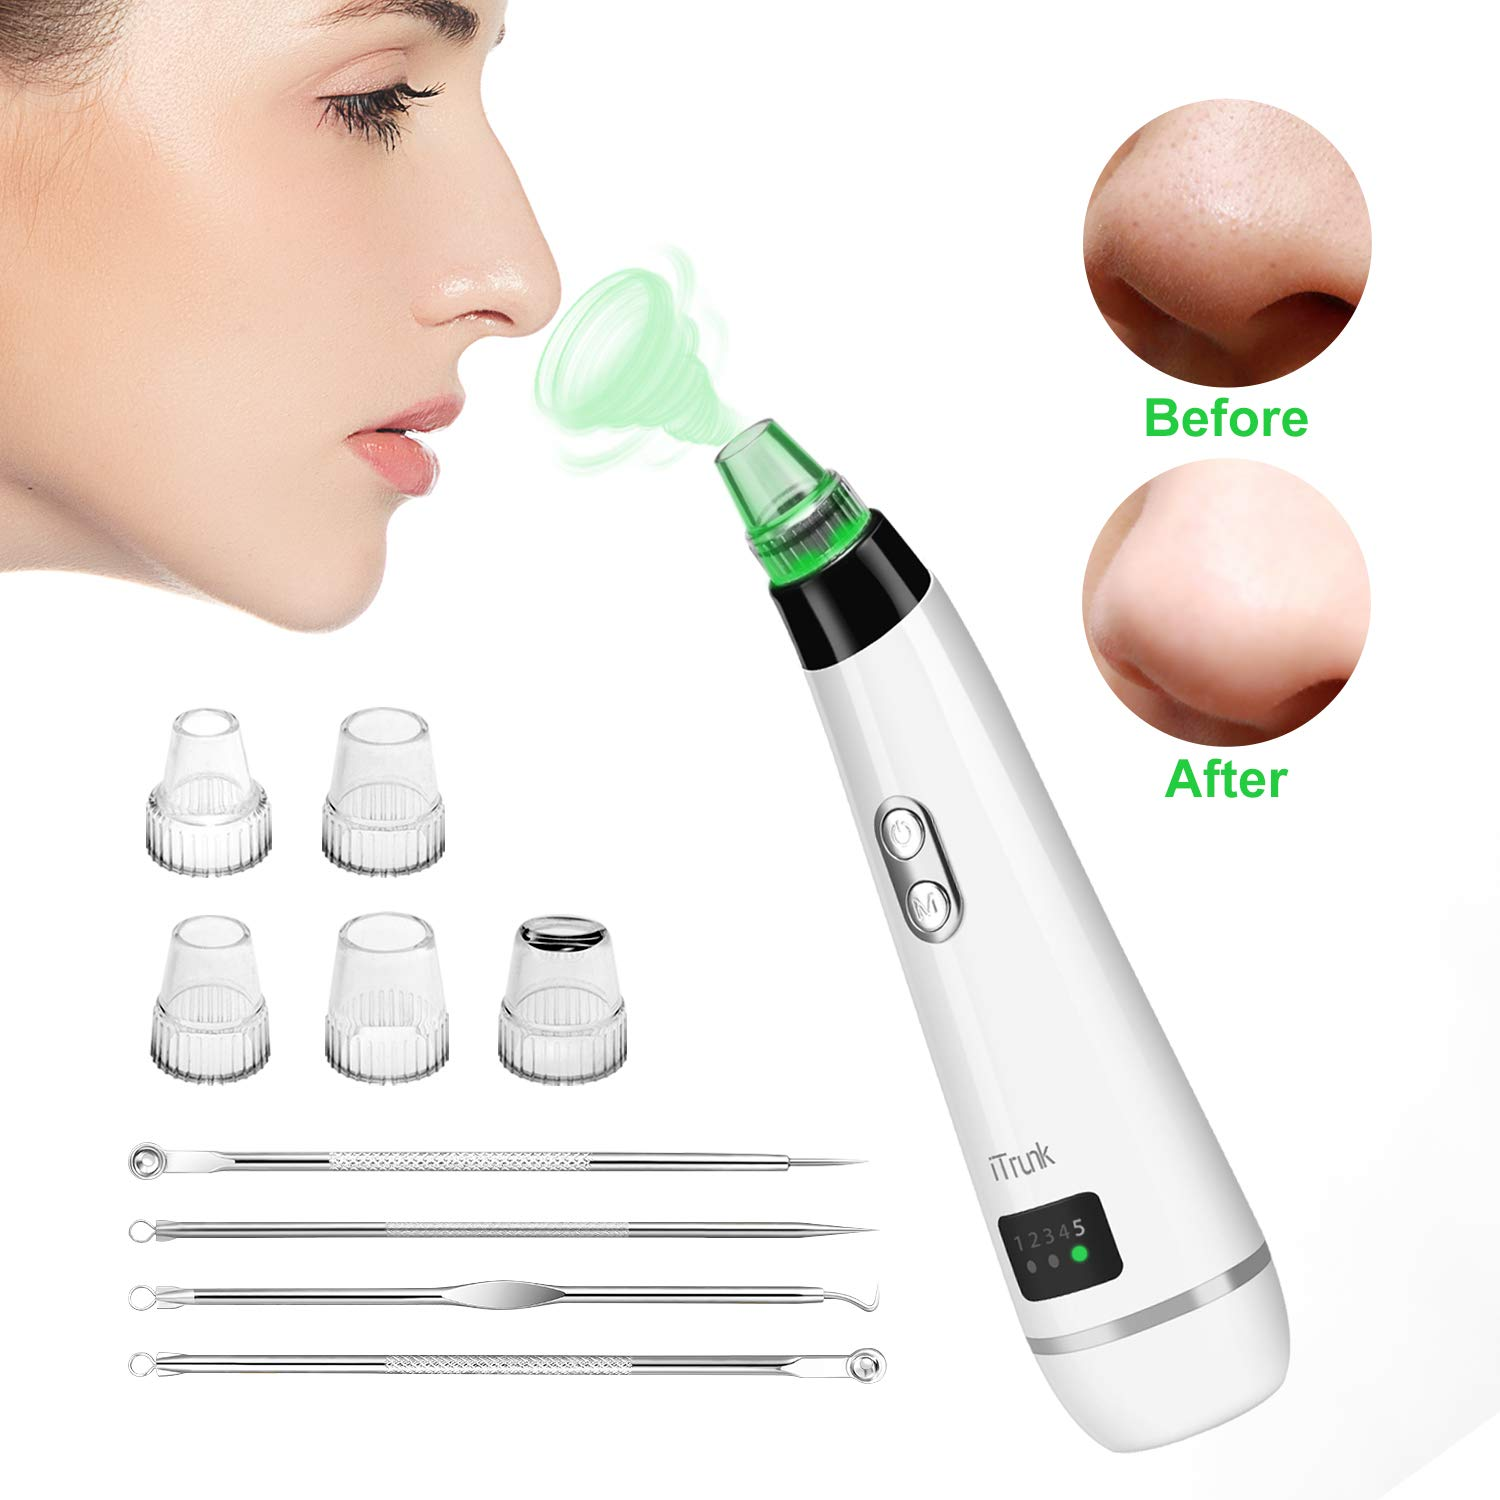 Blackhead Remover, iTrunk Electric Facial Pore Cleanser Comedo Extractor Tool with 4 Multi-Functional Probe, Rechargeable Blackhead Vacuum Suction Remover with LED Display for Facial Skin Clean(White) E427